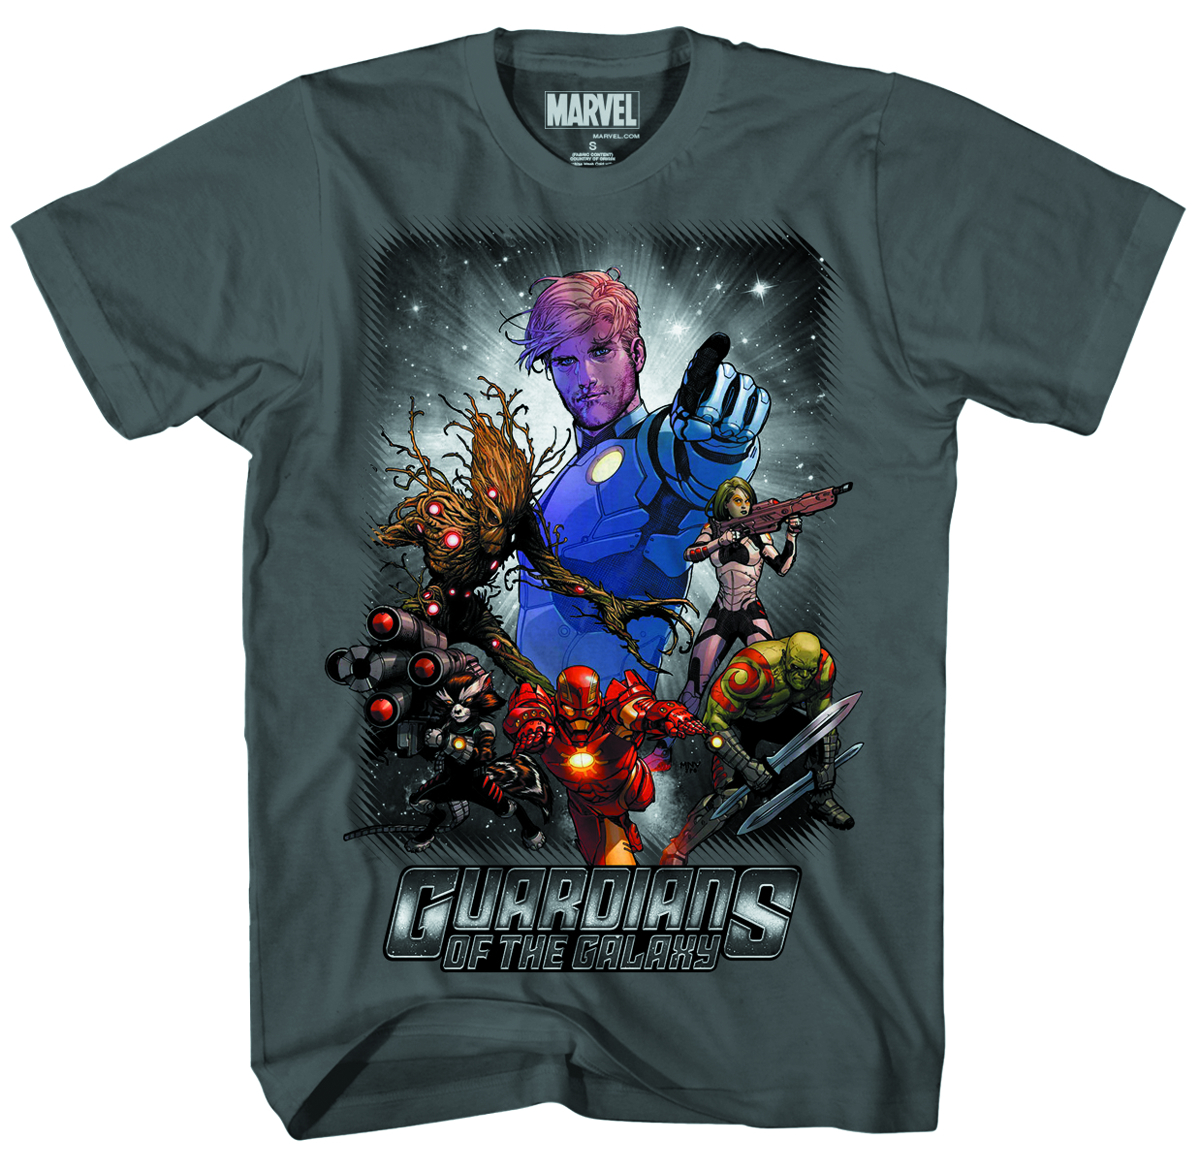 GOTG SPACE POLICE PX CHARCOAL T/S LG